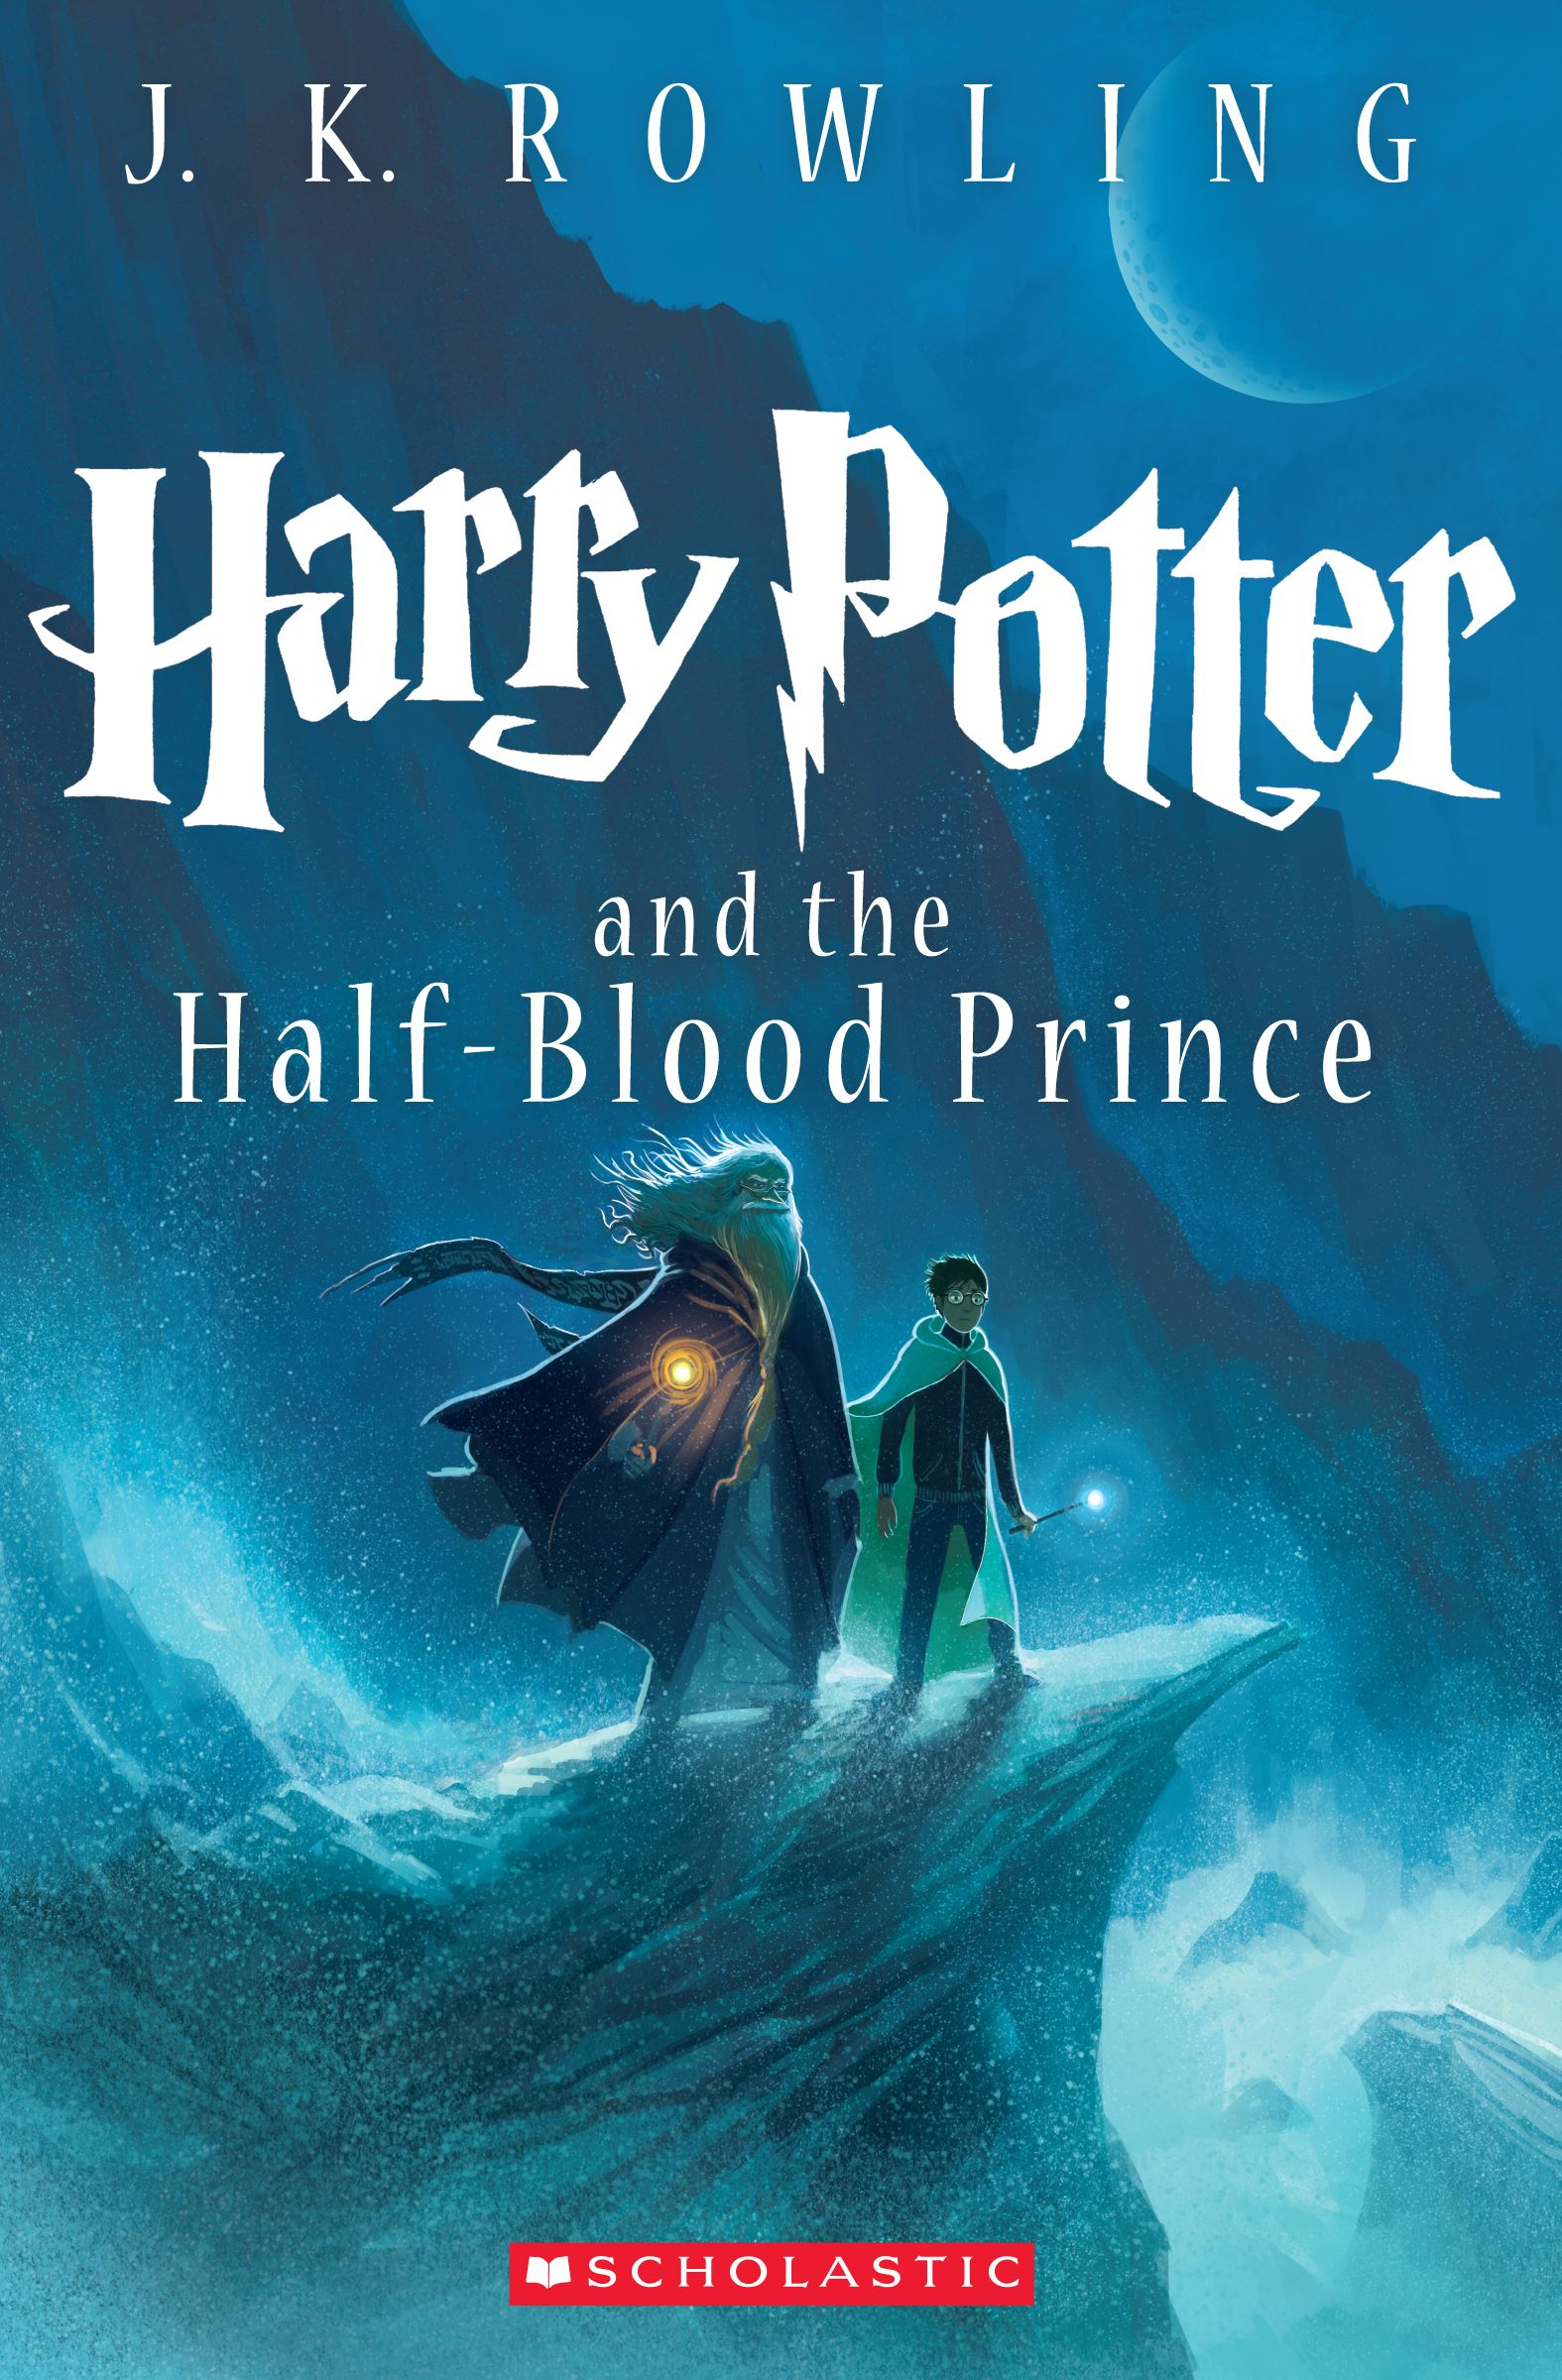 Presenting the NEW cover for Harry Potter and the Half-Blood Prince,  illustrated by Kazu Kibuishi. This is the 6th book in J.K. Rowling's  best-selling Harry ...